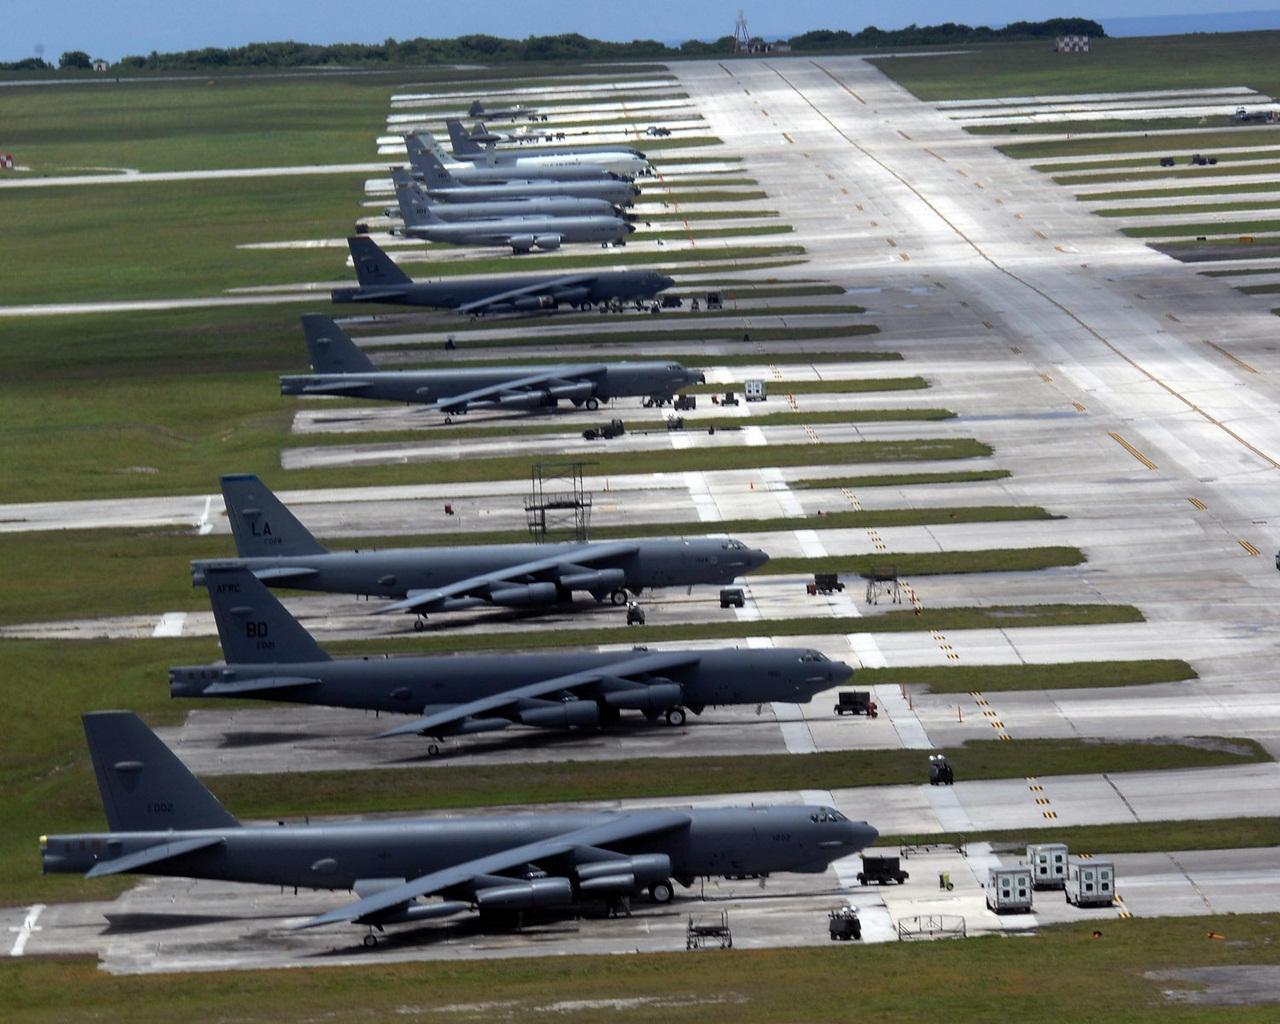 B-52s roar over Guam during bomber surge